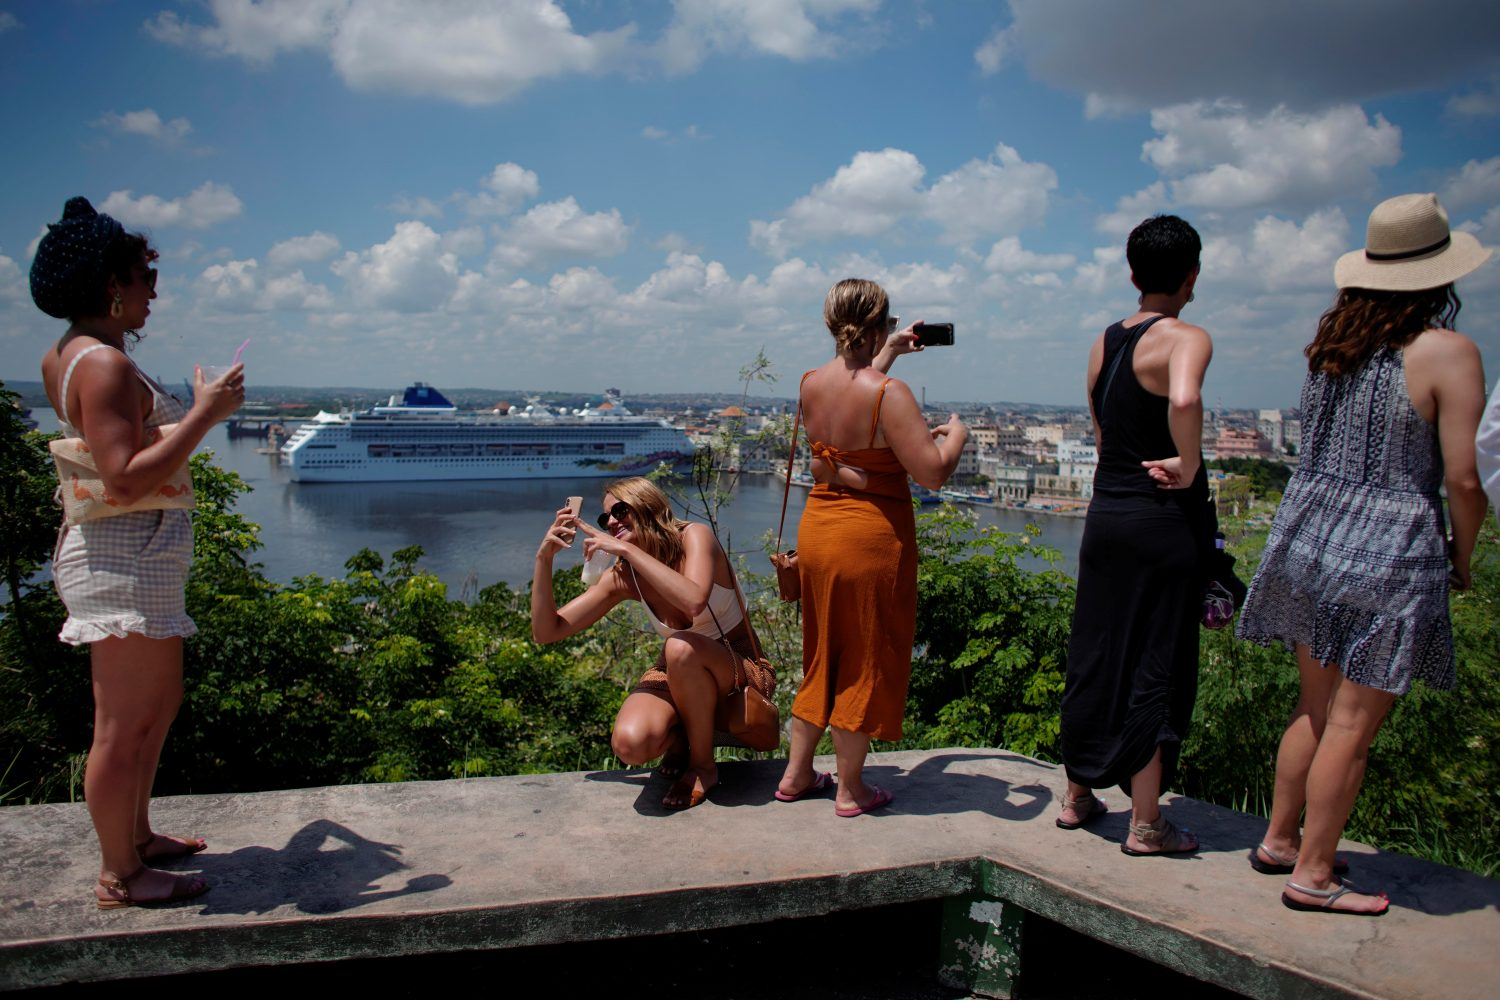 Tourists enjoy a view of the city in Havana, Cuba, June 4, 2019. REUTERS/Alexandre Meneghini